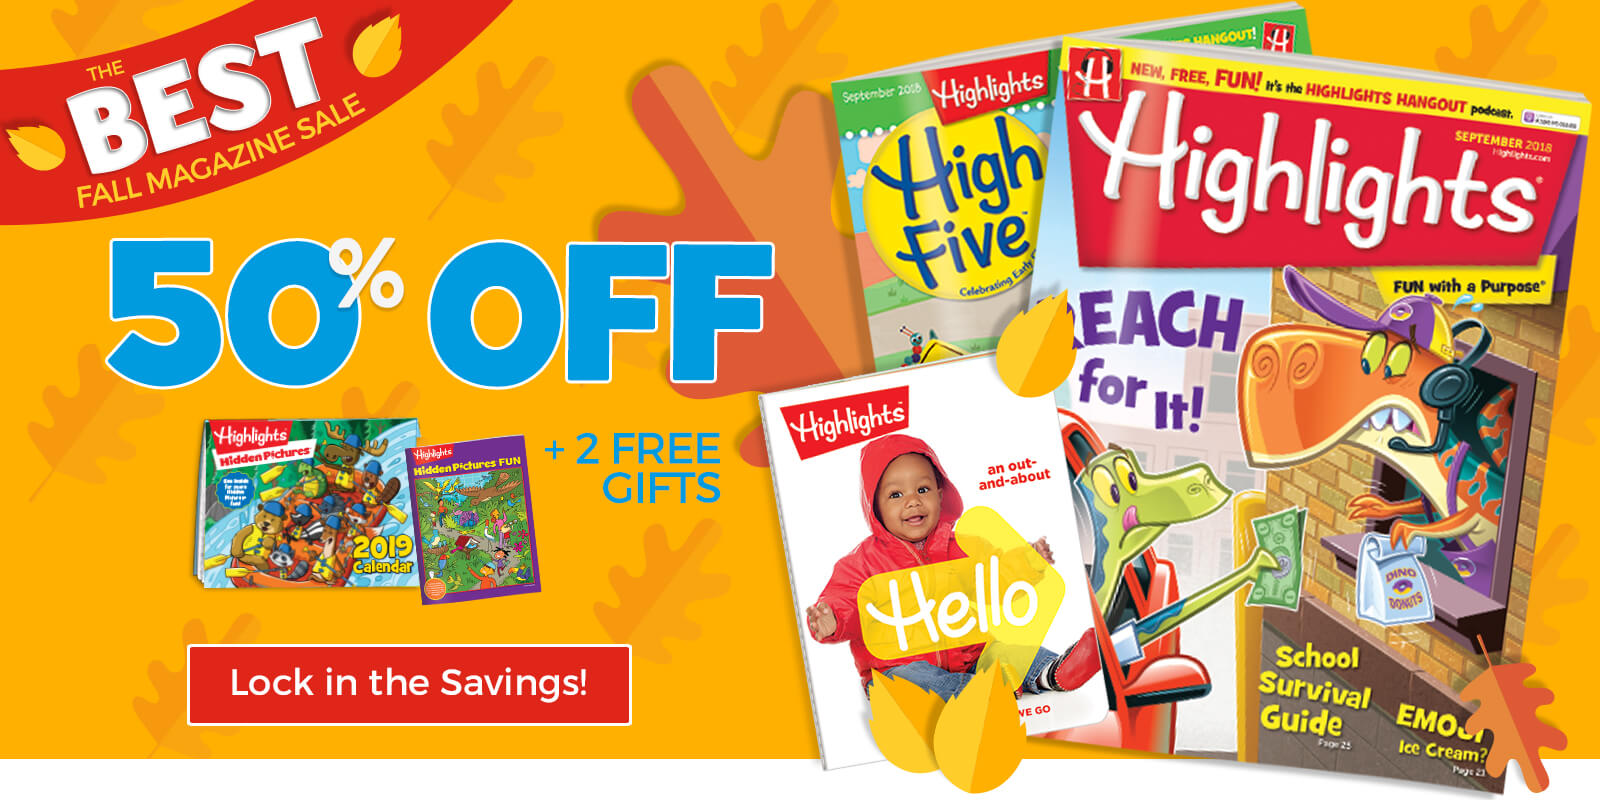 Get fifty percent off your child's magazine subscription plus two free gifts